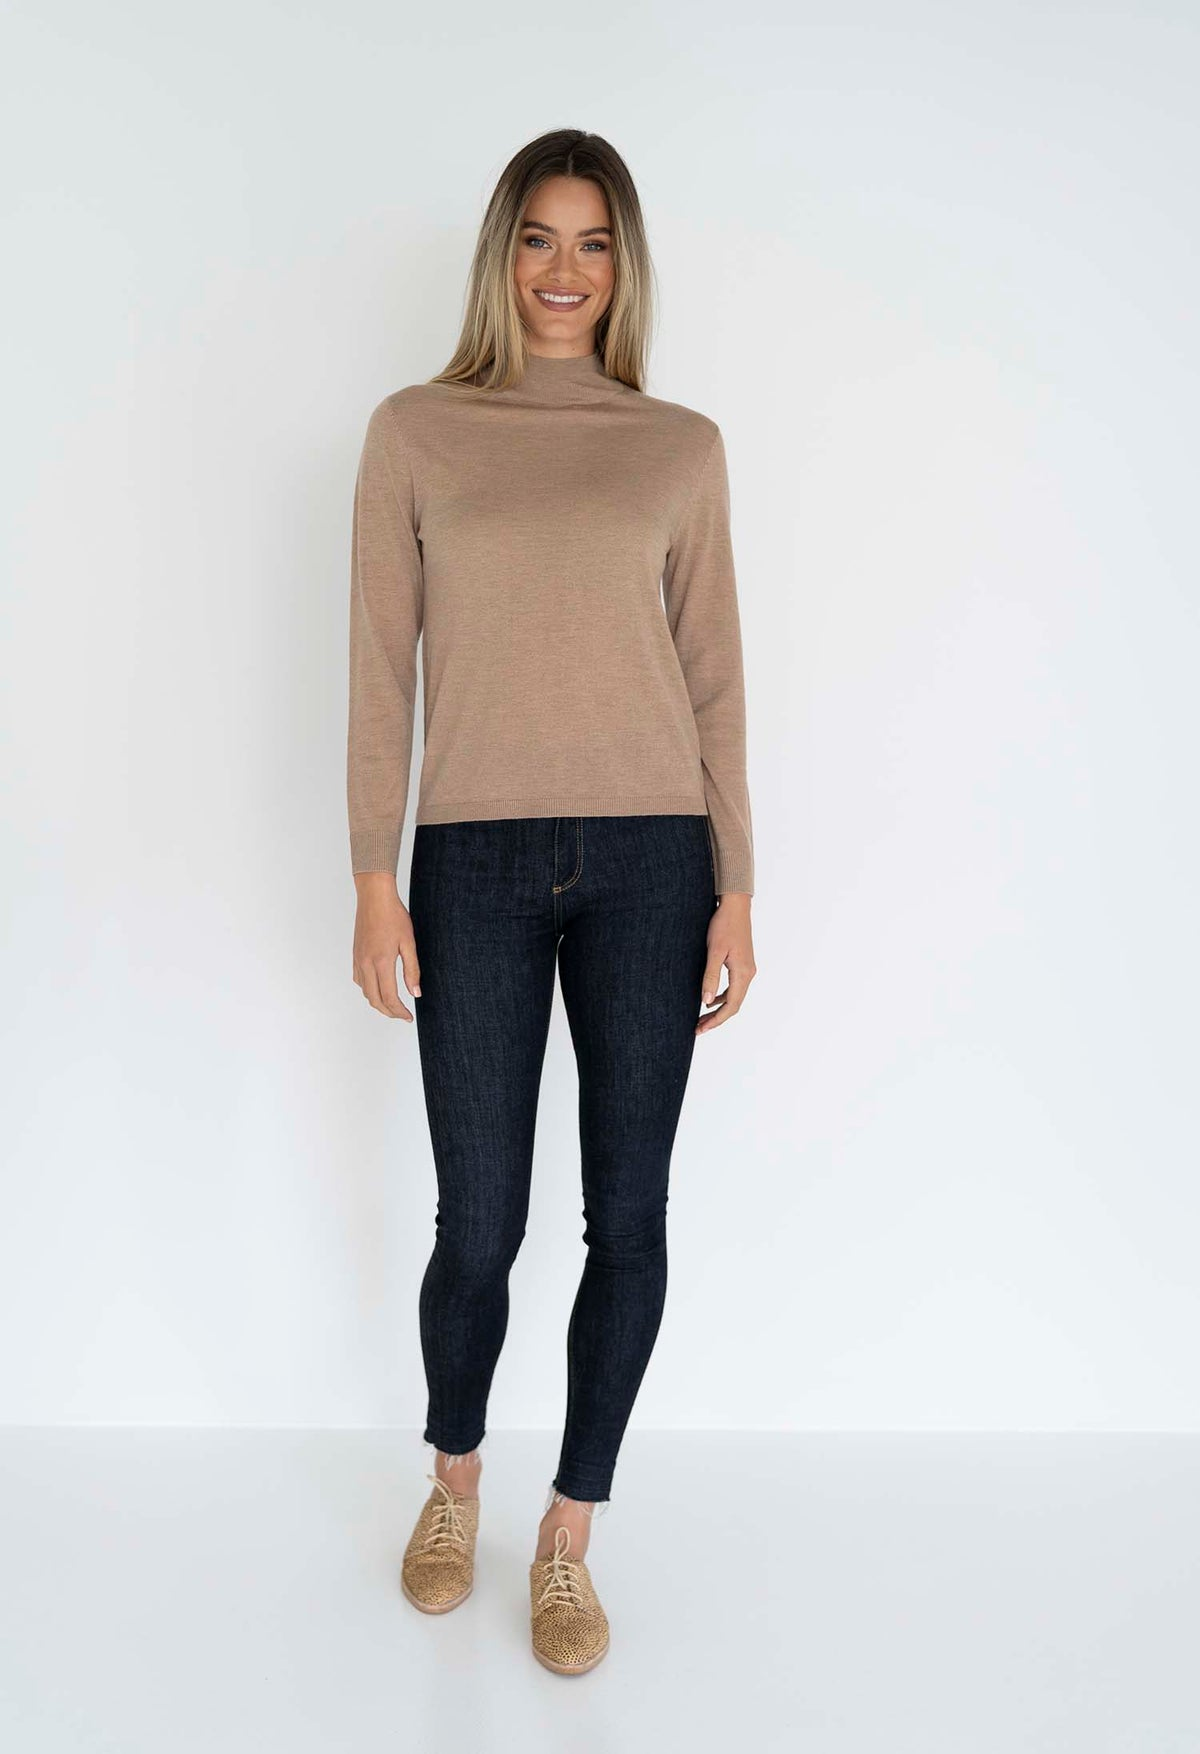 RUBY HI NECK BASIC LATTE